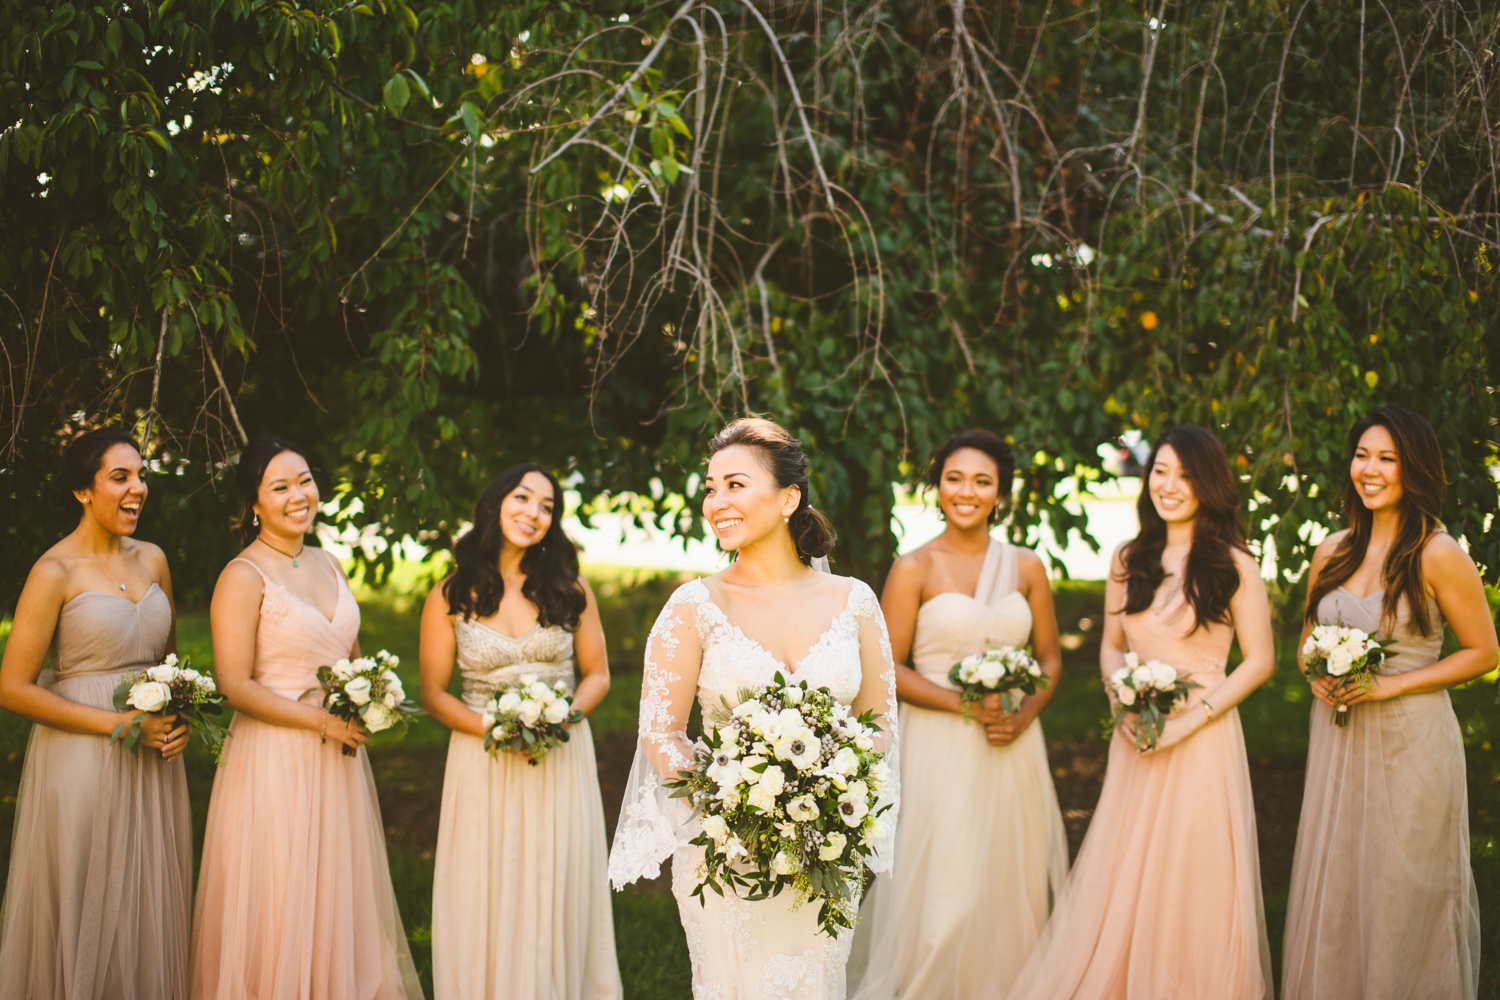 011 bride and bridesmaids laughing together.jpg